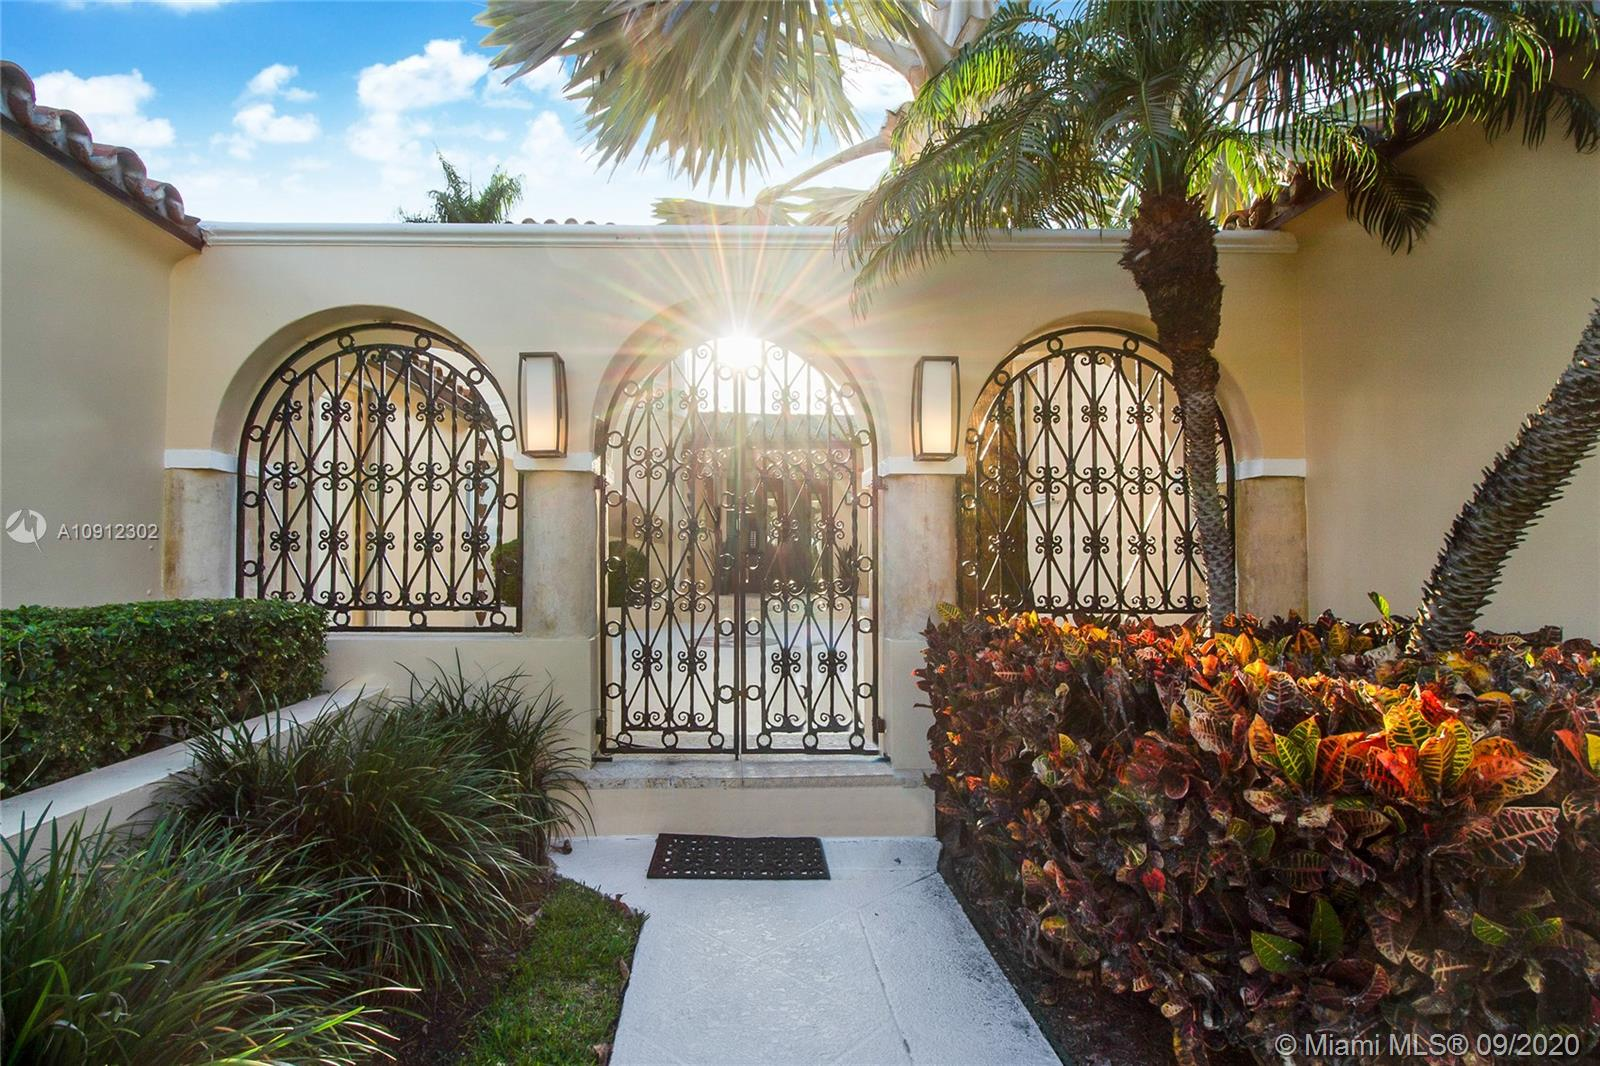 Photo of 114 W San Marino Dr # listing for Sale